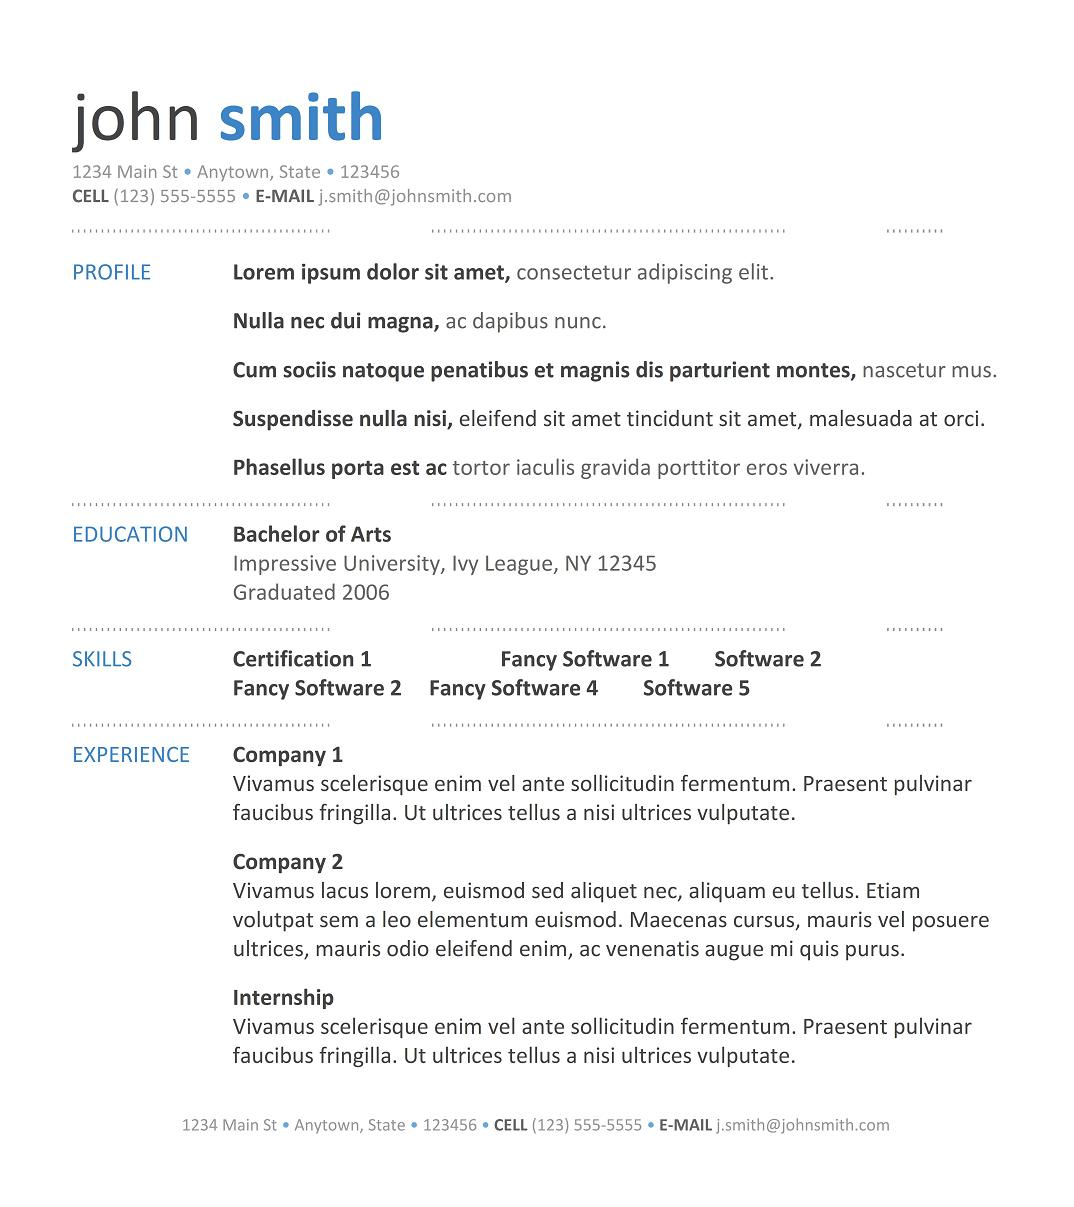 Short resume template geminifm short resume template altavistaventures Image collections